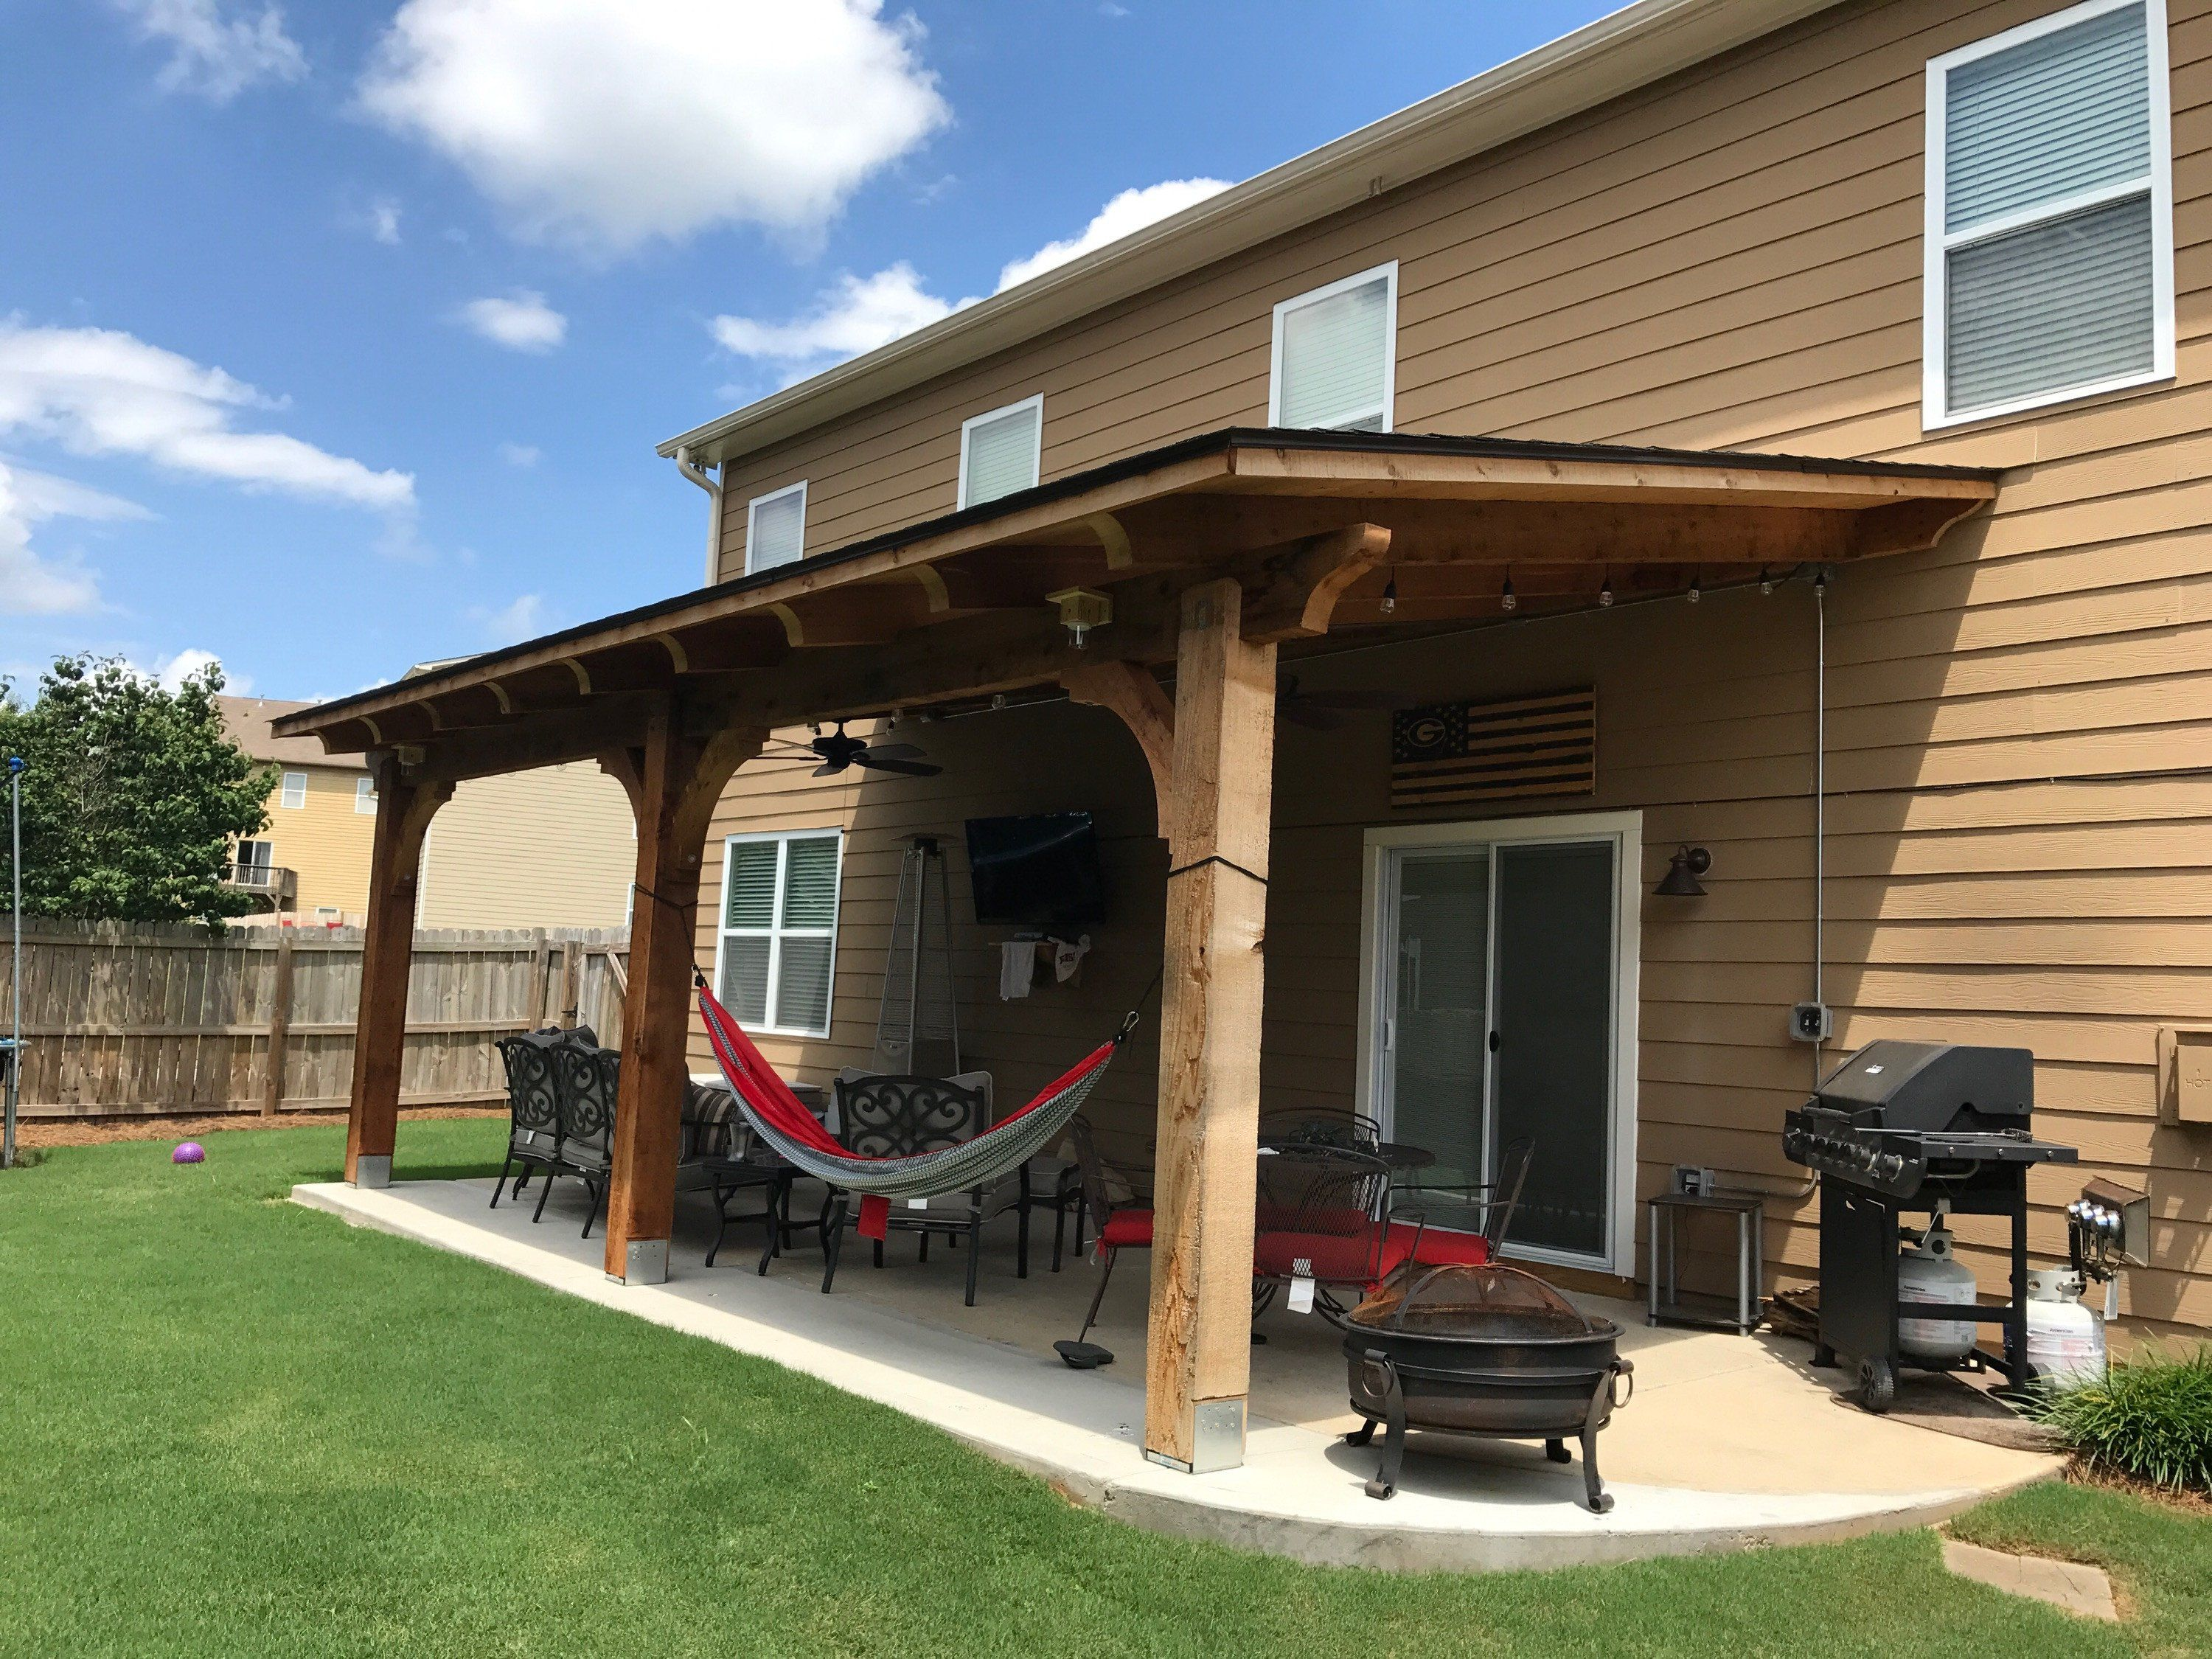 Shed Roof Awnings Patio Remodel Covered Patio Design Patio Design